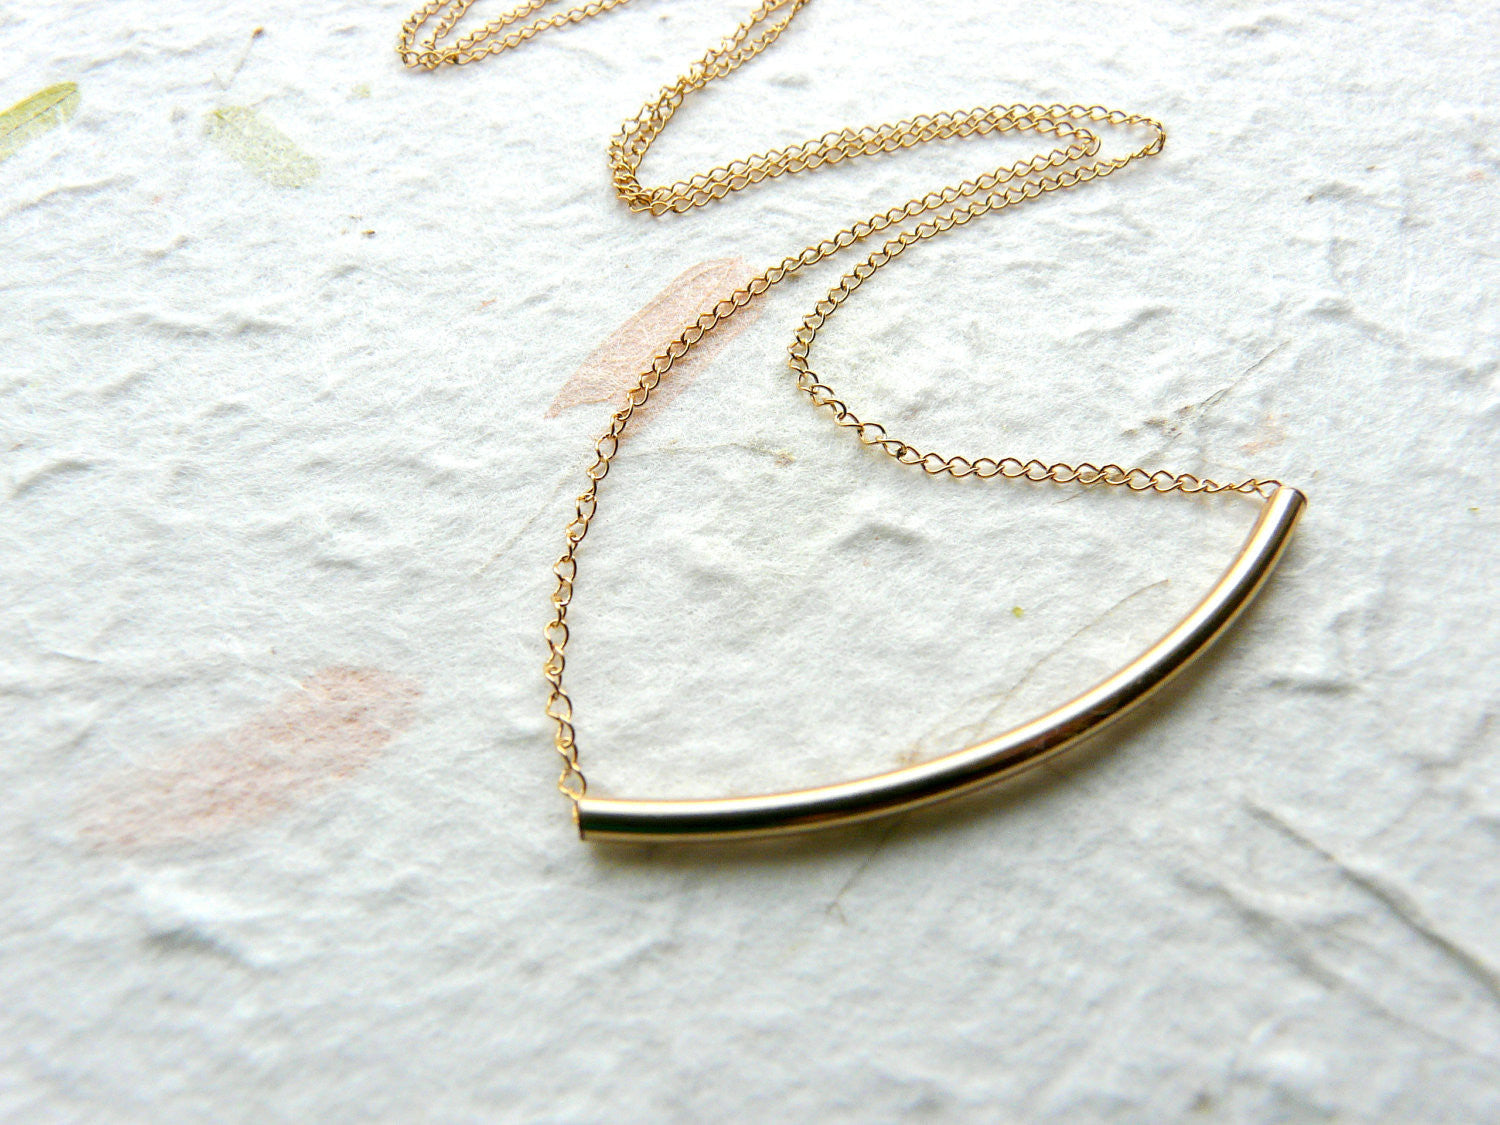 Tube necklace - OpaLandJewelry